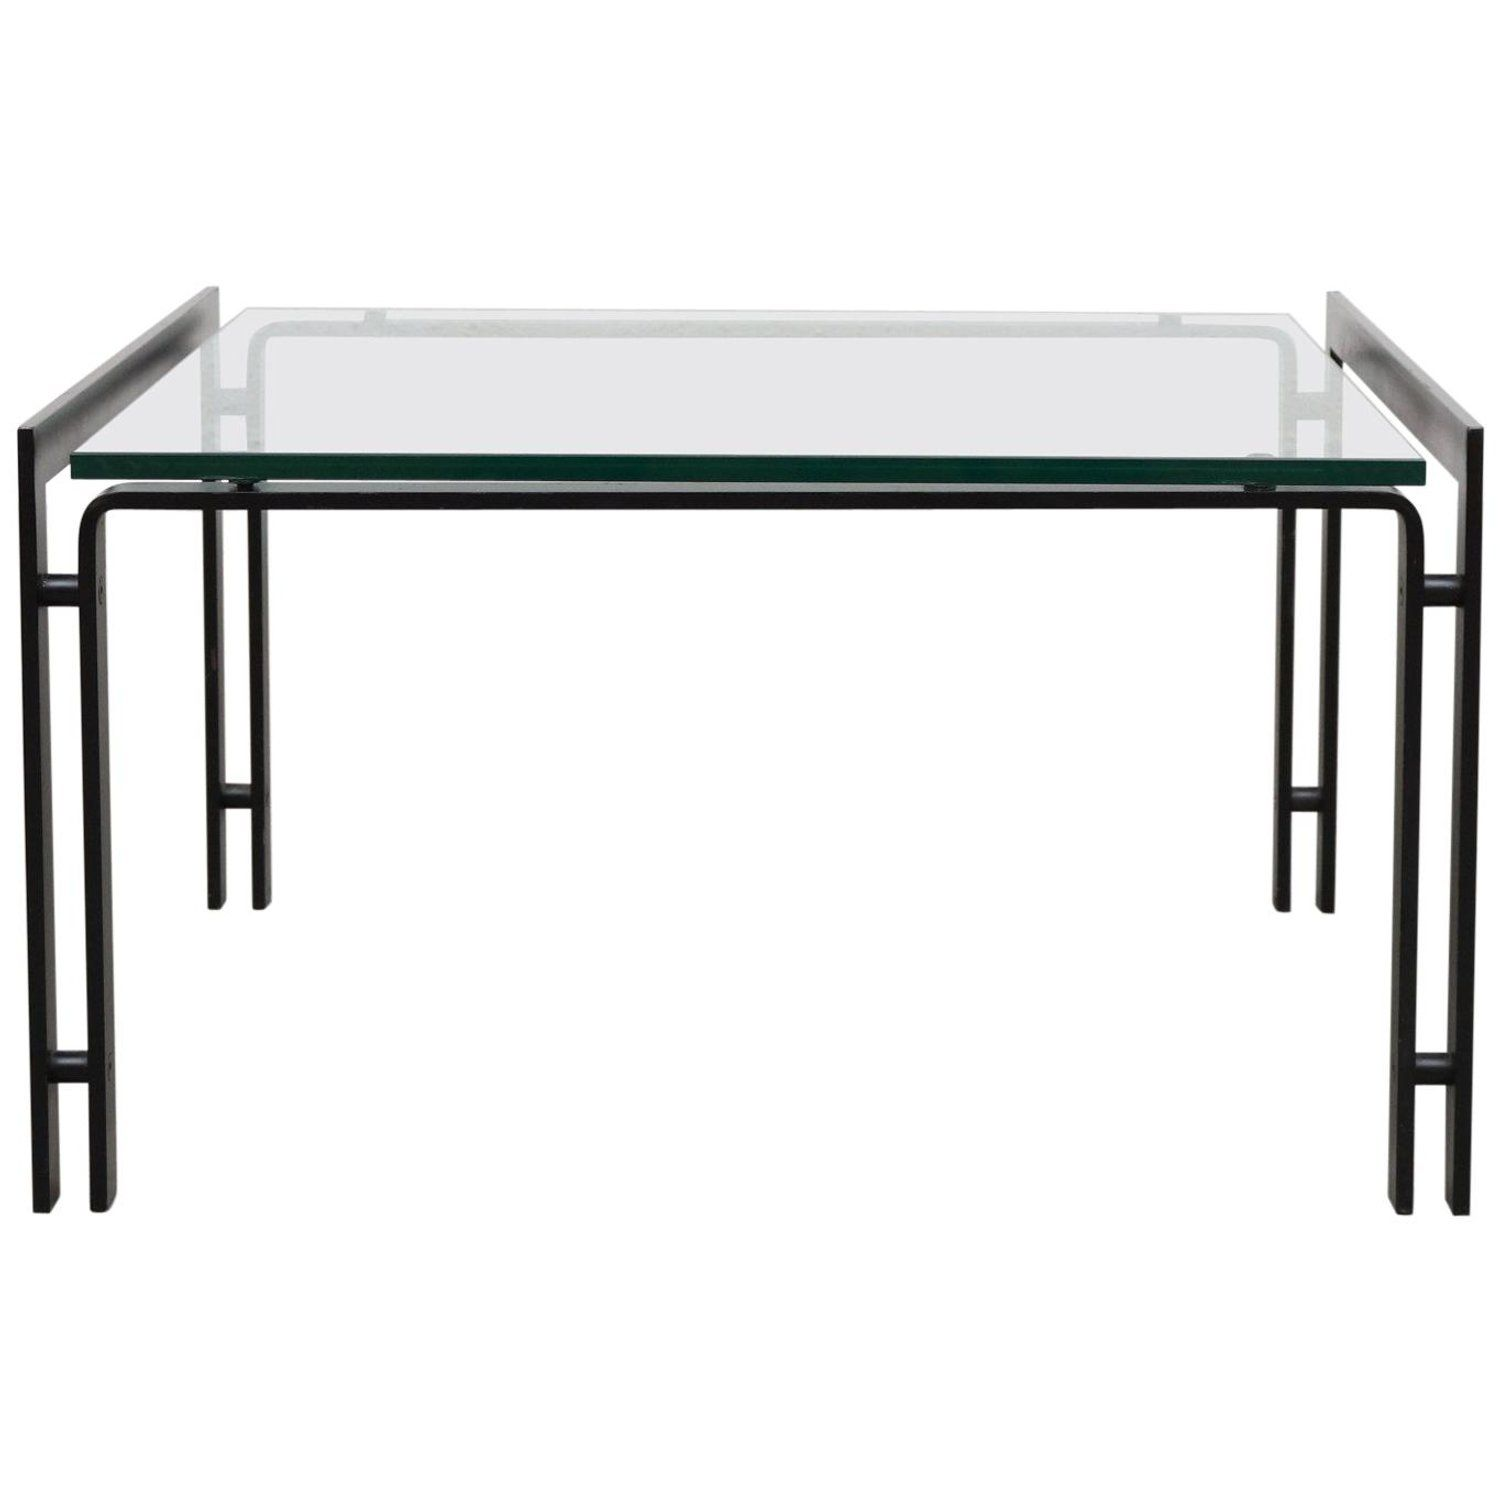 Metaform Glass Coffee Table With Black Enameled Metal Frame Glass Top Side Table Black Glass Coffee Table Aluminum Table [ 1500 x 1500 Pixel ]